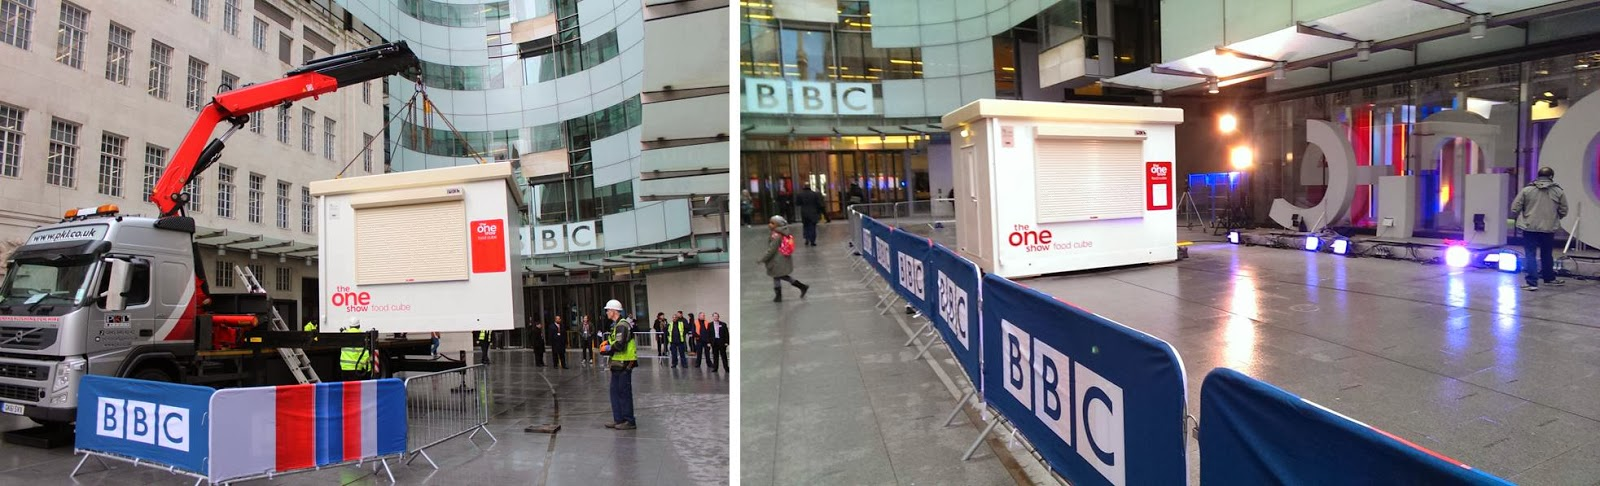 PKL Food Cube installation on The One Show